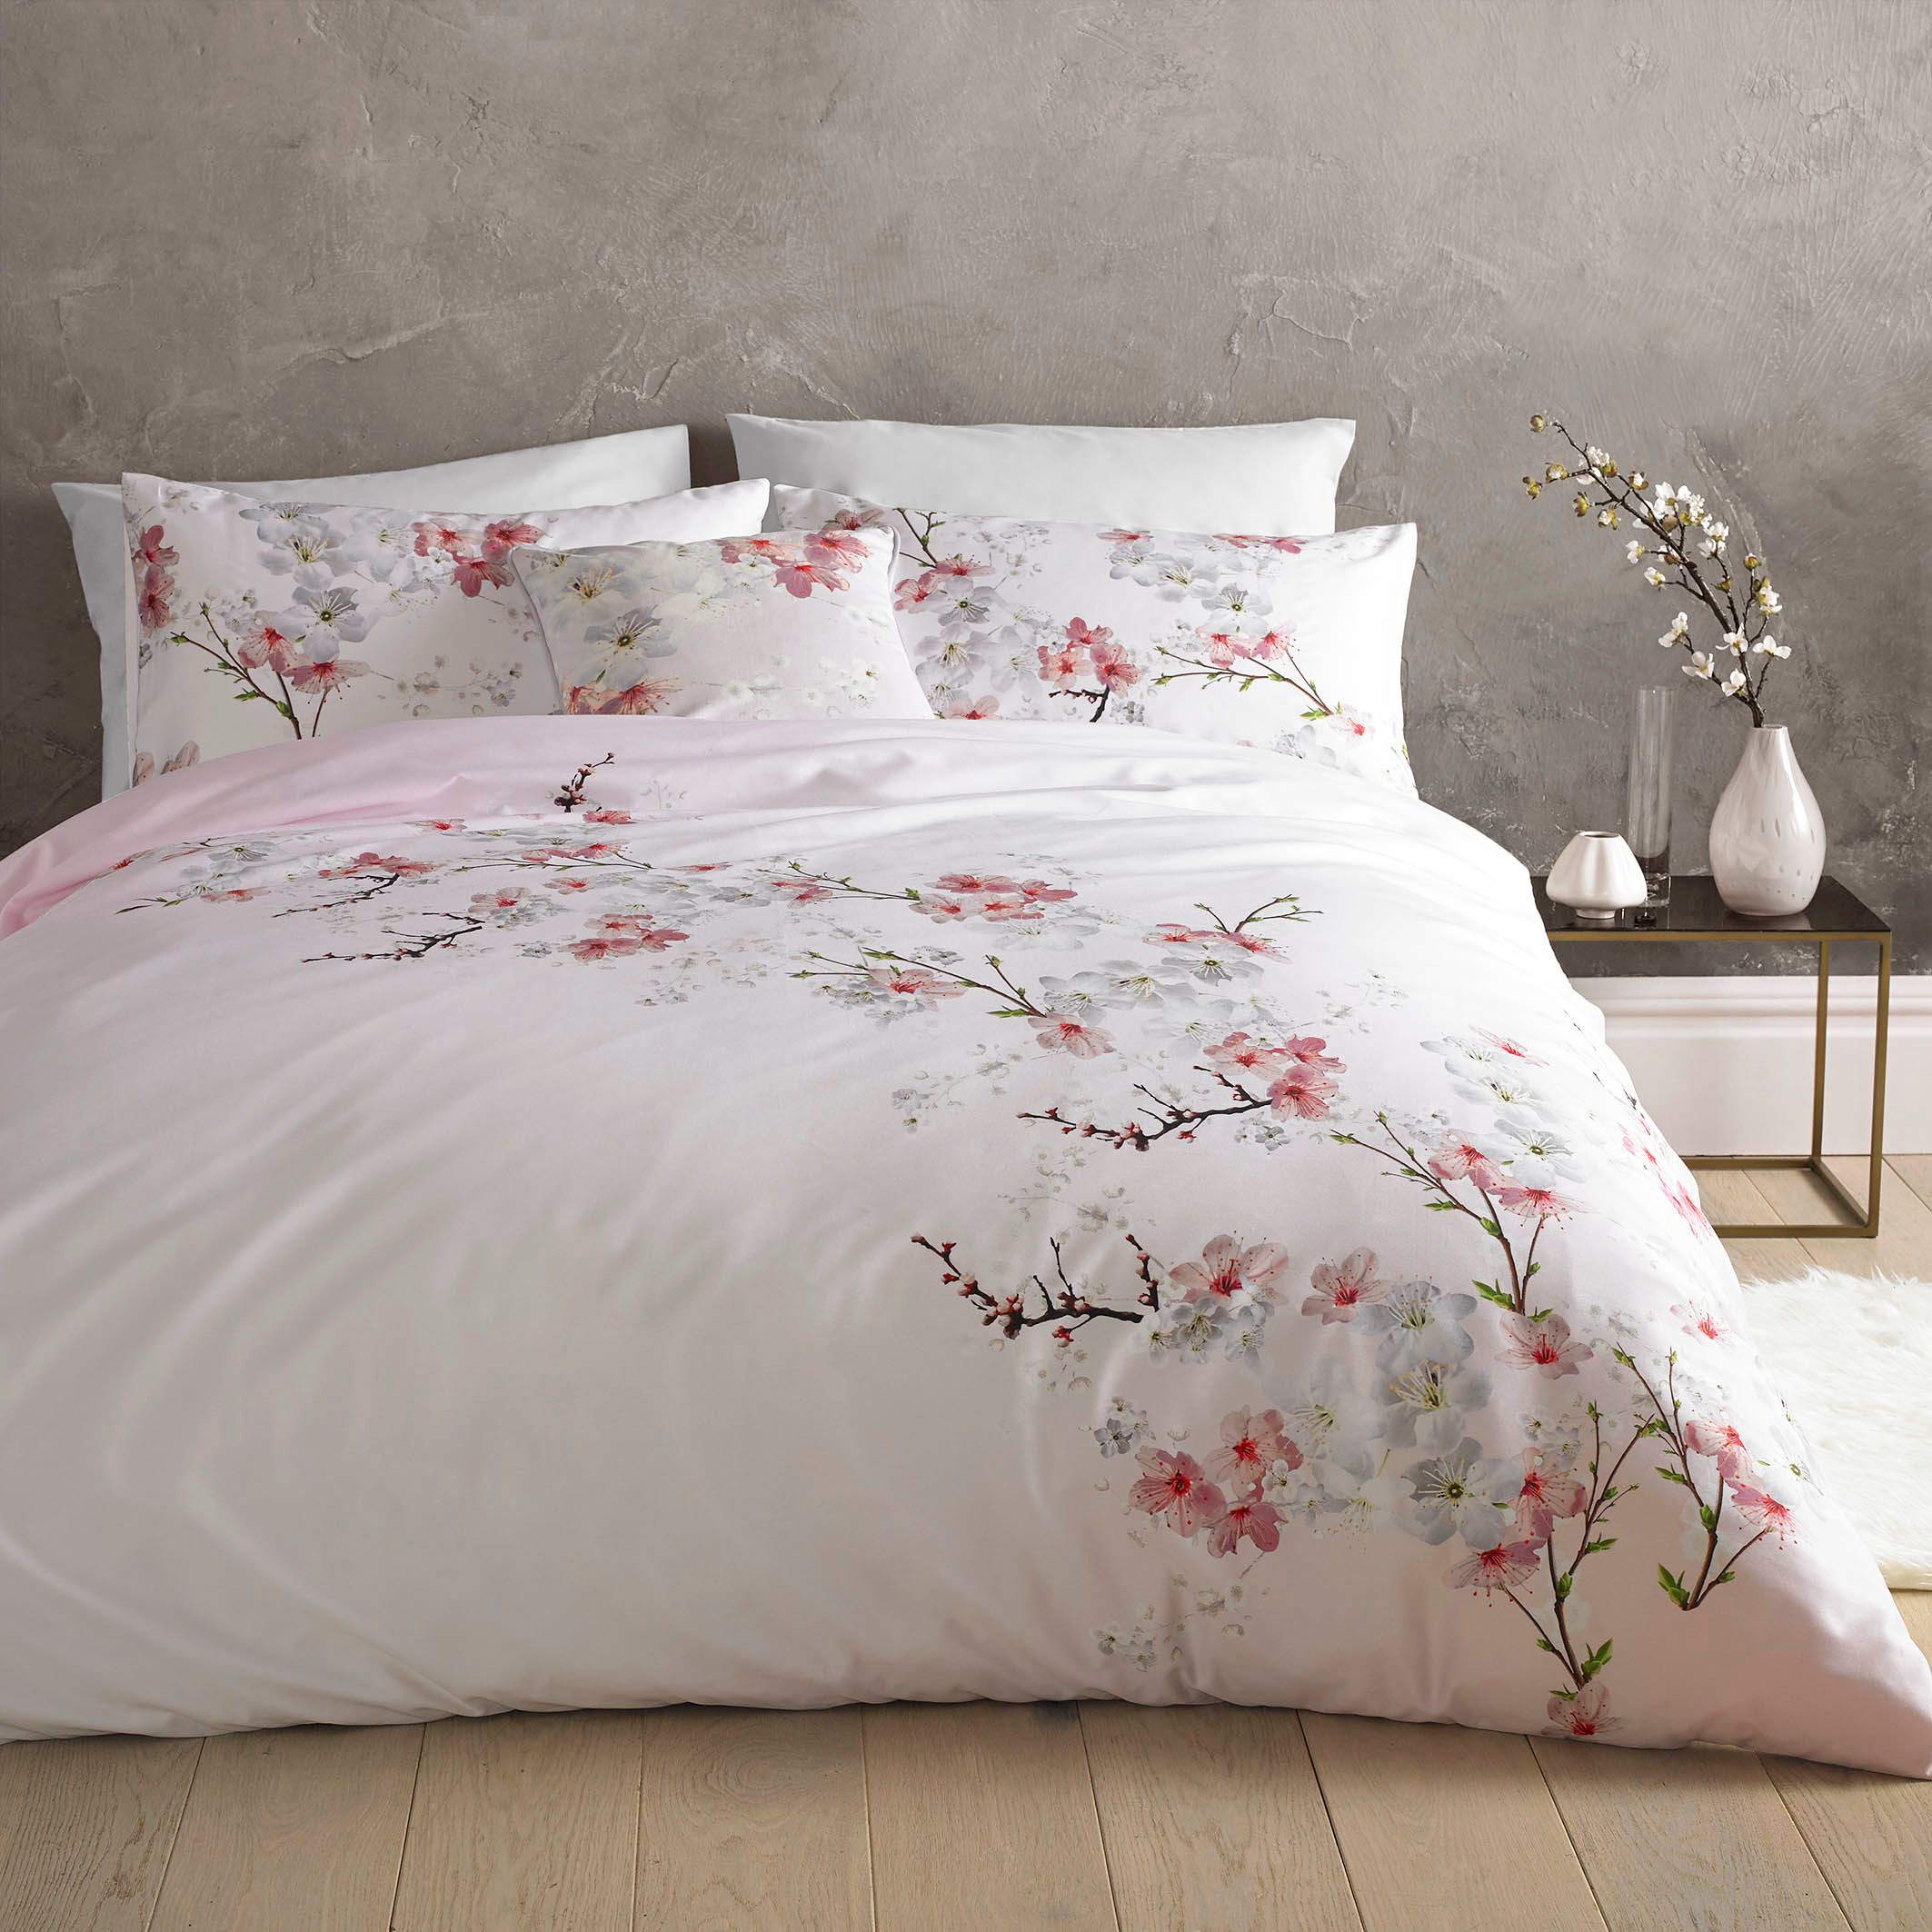 Ted Baker Duvet Covers at House of Fraser : oriental quilt cover - Adamdwight.com